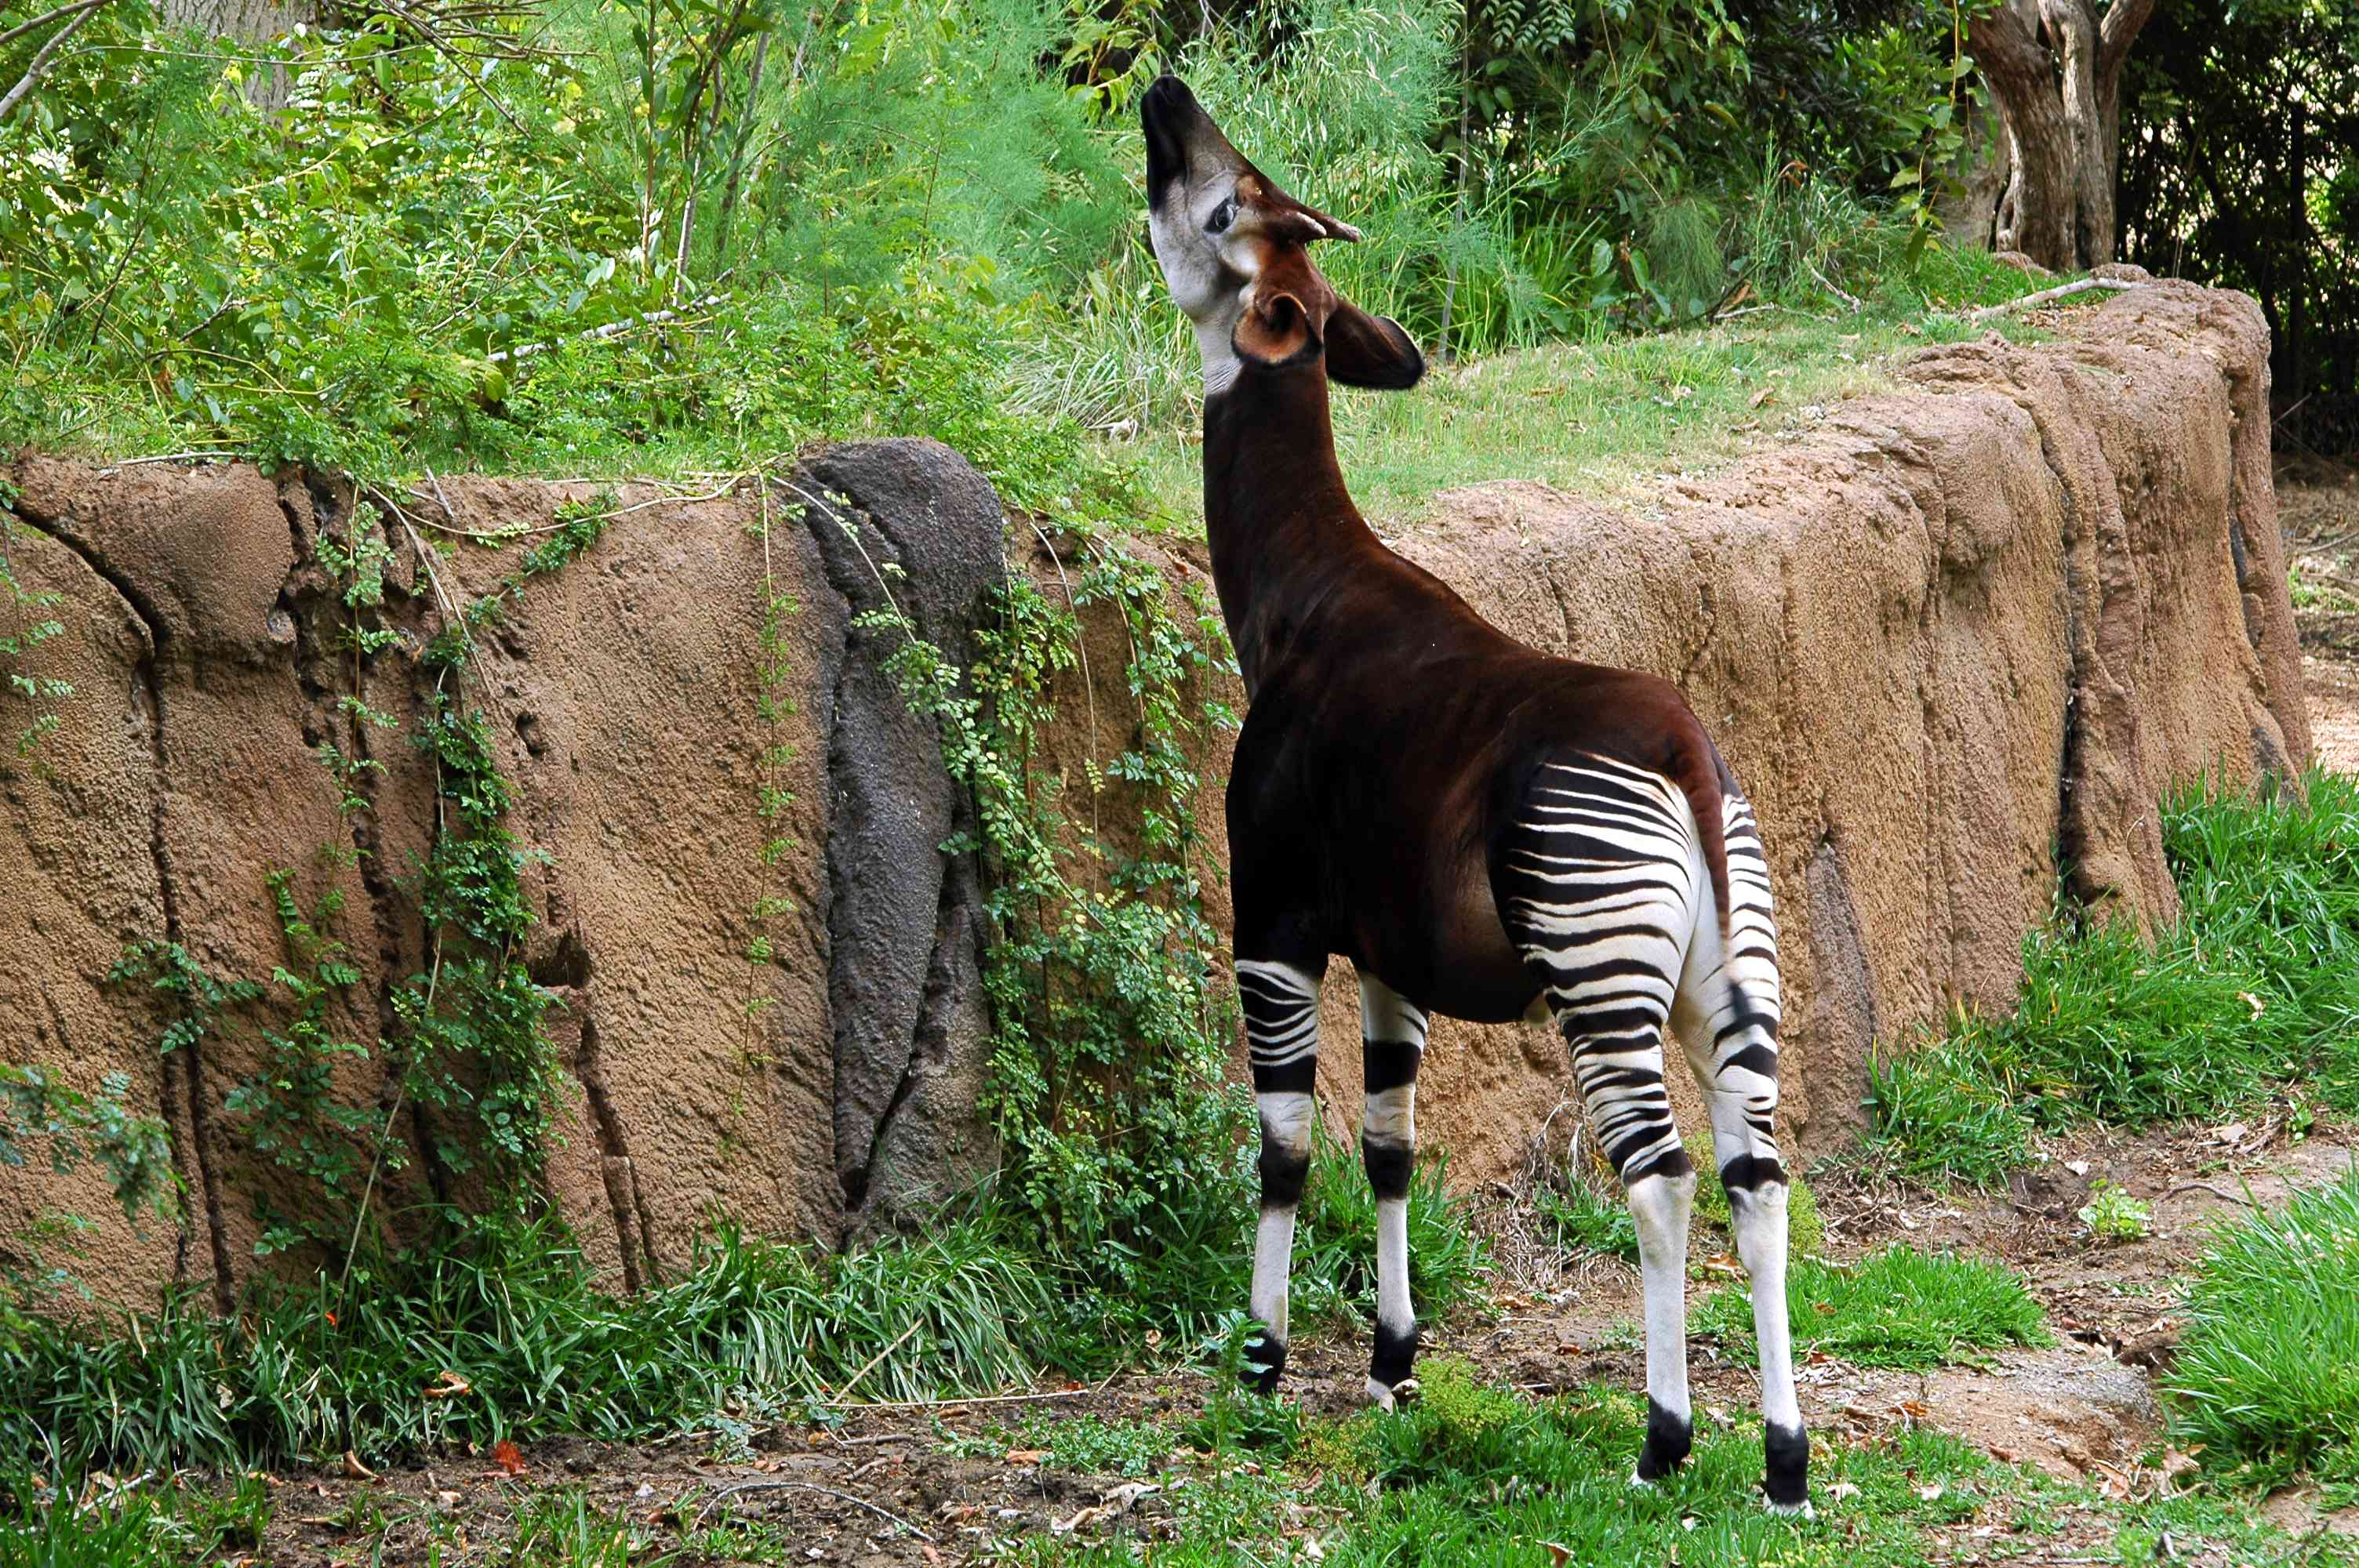 A brown okapi with striped white and brown legs standing in front of a stone wall reaching its face toward green vegetation